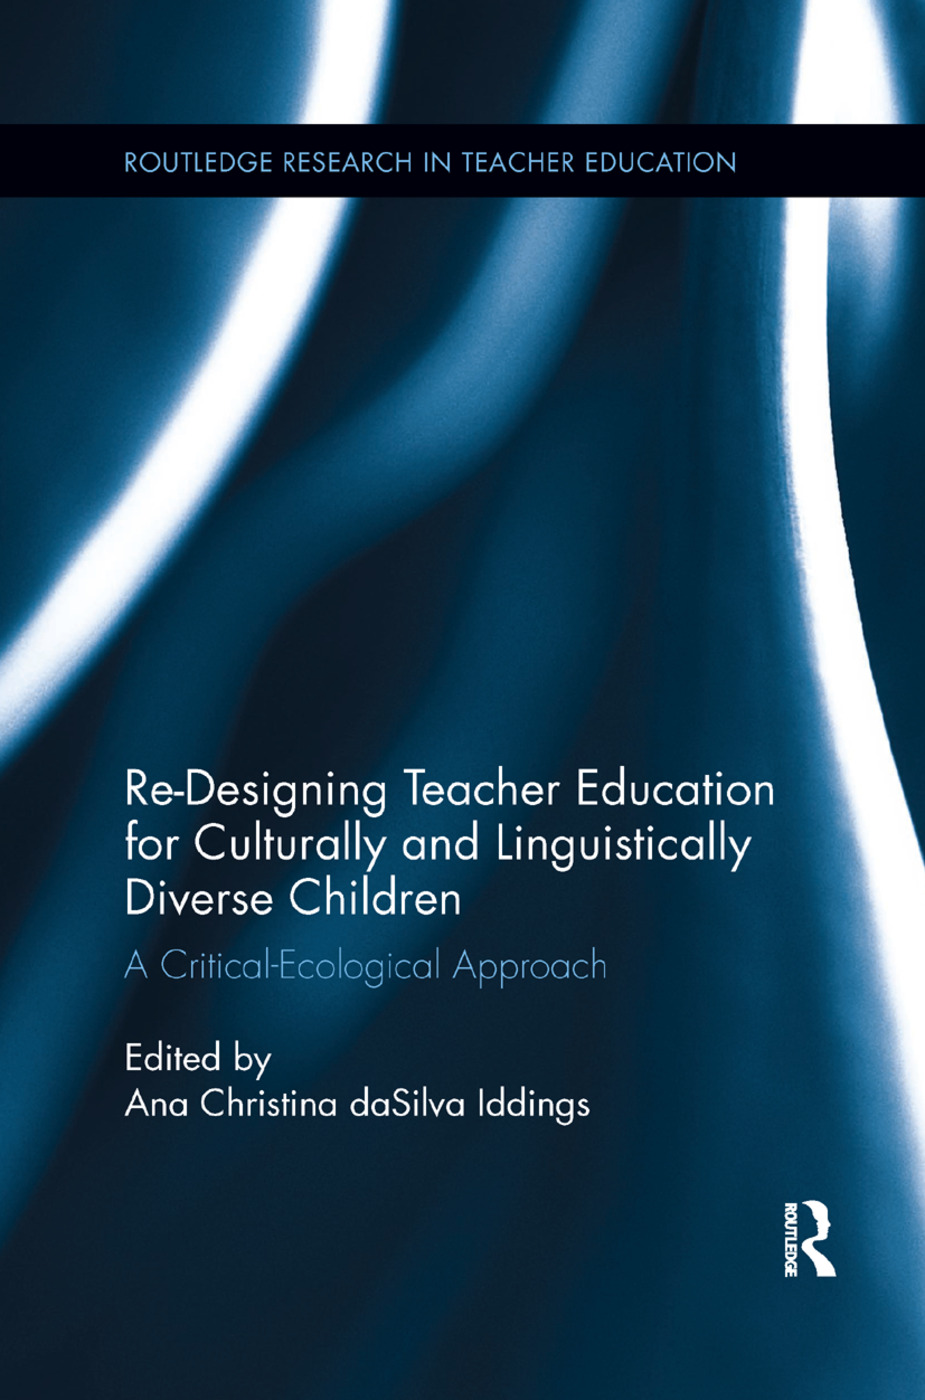 Re-Designing Teacher Education for Culturally and Linguistically Diverse Students: A Critical-Ecological Approach book cover